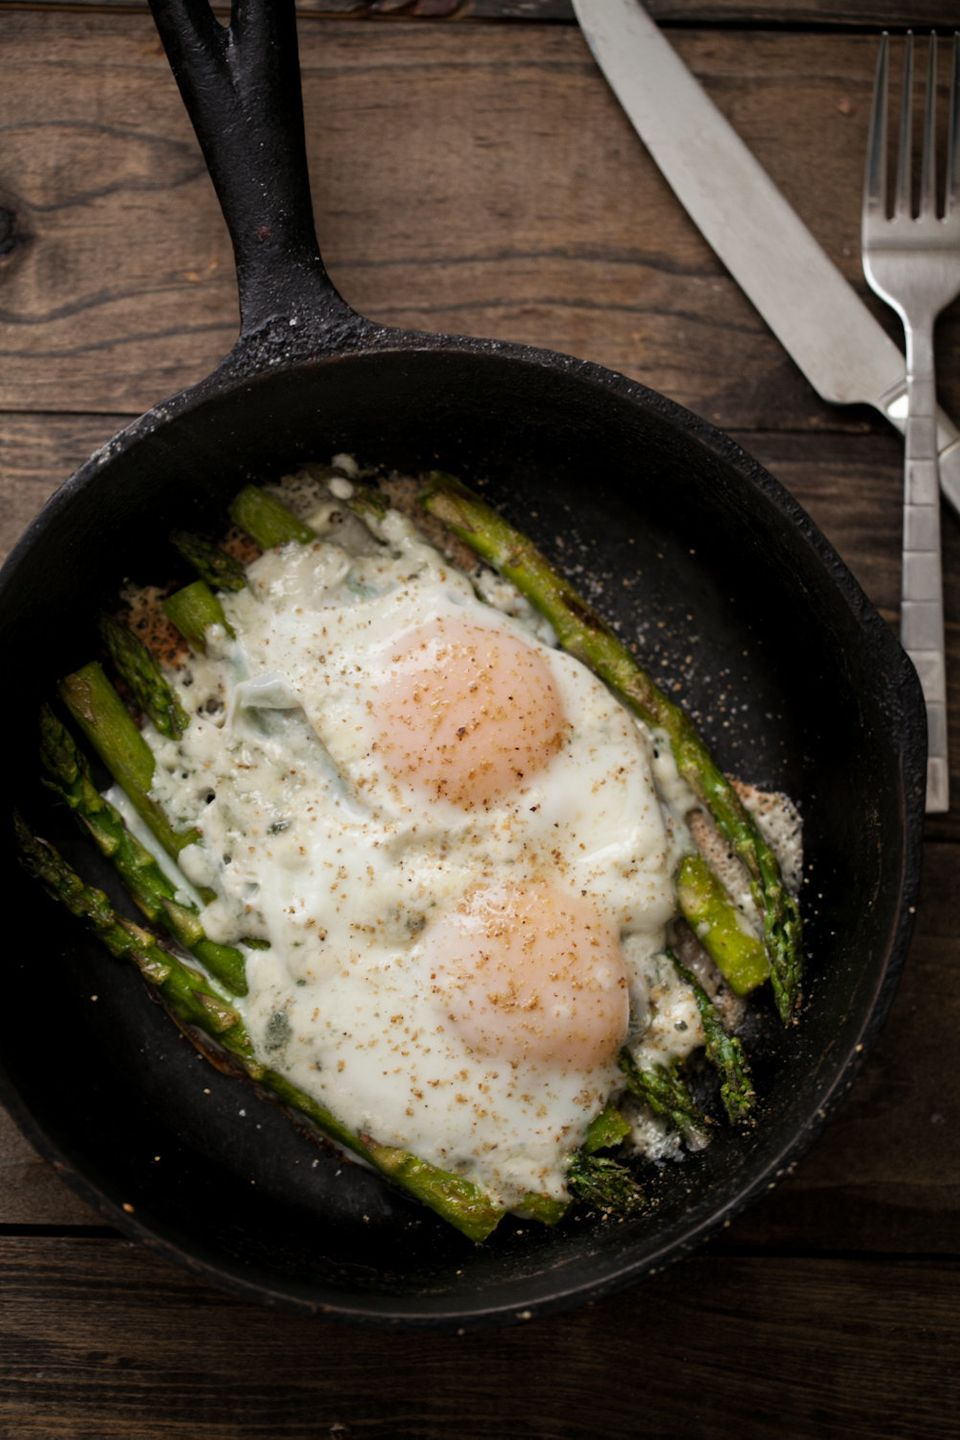 "<strong>Get the <a href=""http://naturallyella.com/2013/05/03/asparagus-and-eggs/"">Asparagus And Eggs recipe</a>&nbsp;from Nat"